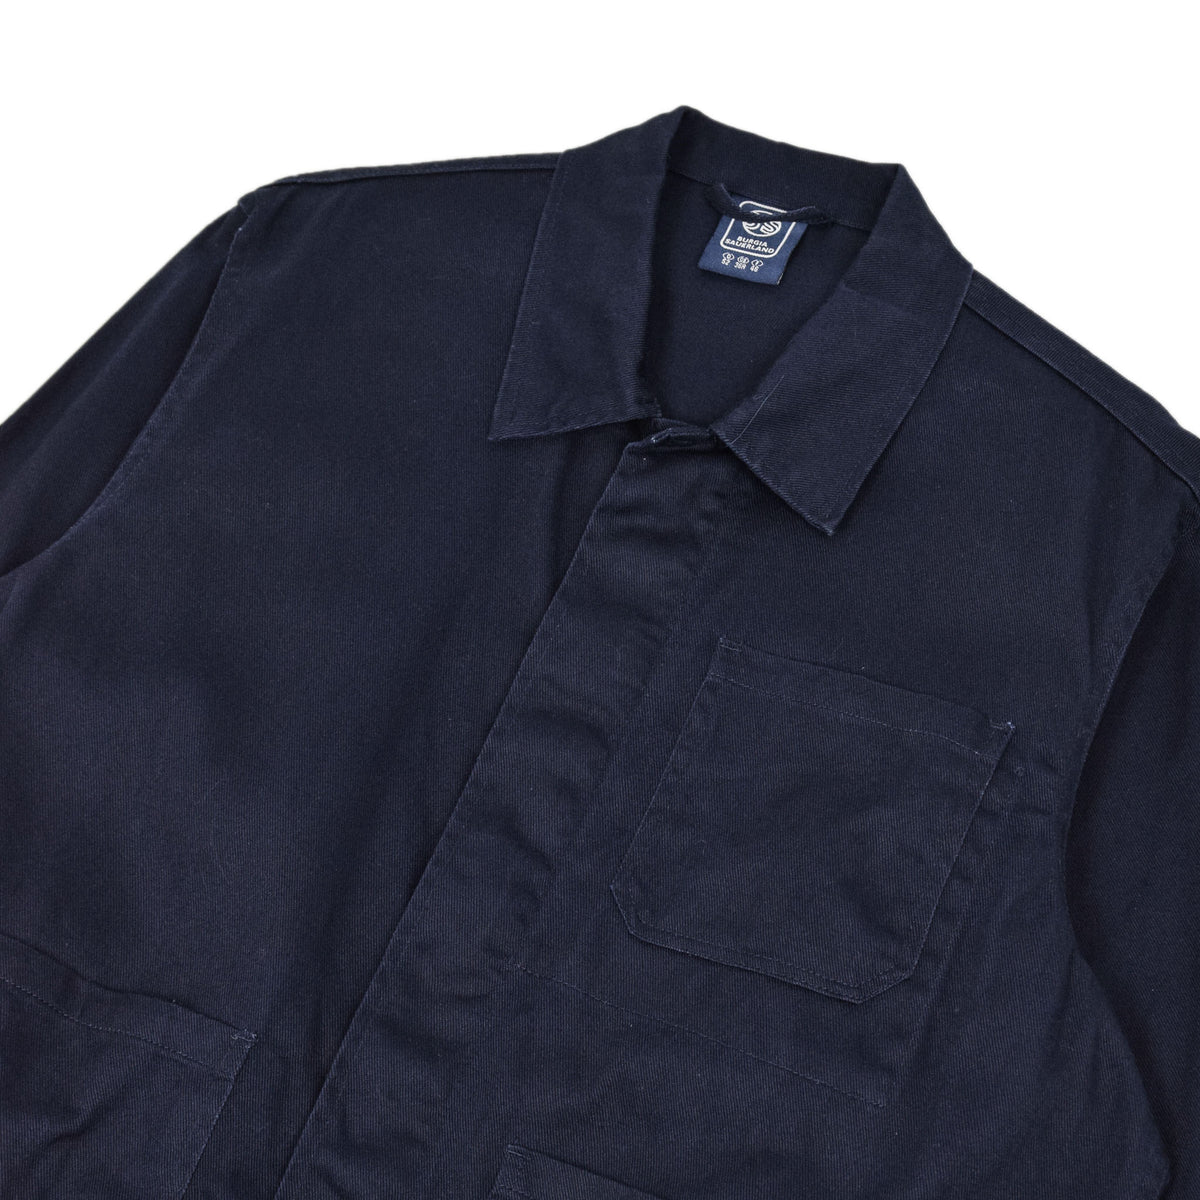 Vintage Navy Blue French Style Worker Sanforized Cotton Chore Jacket L / XL chest